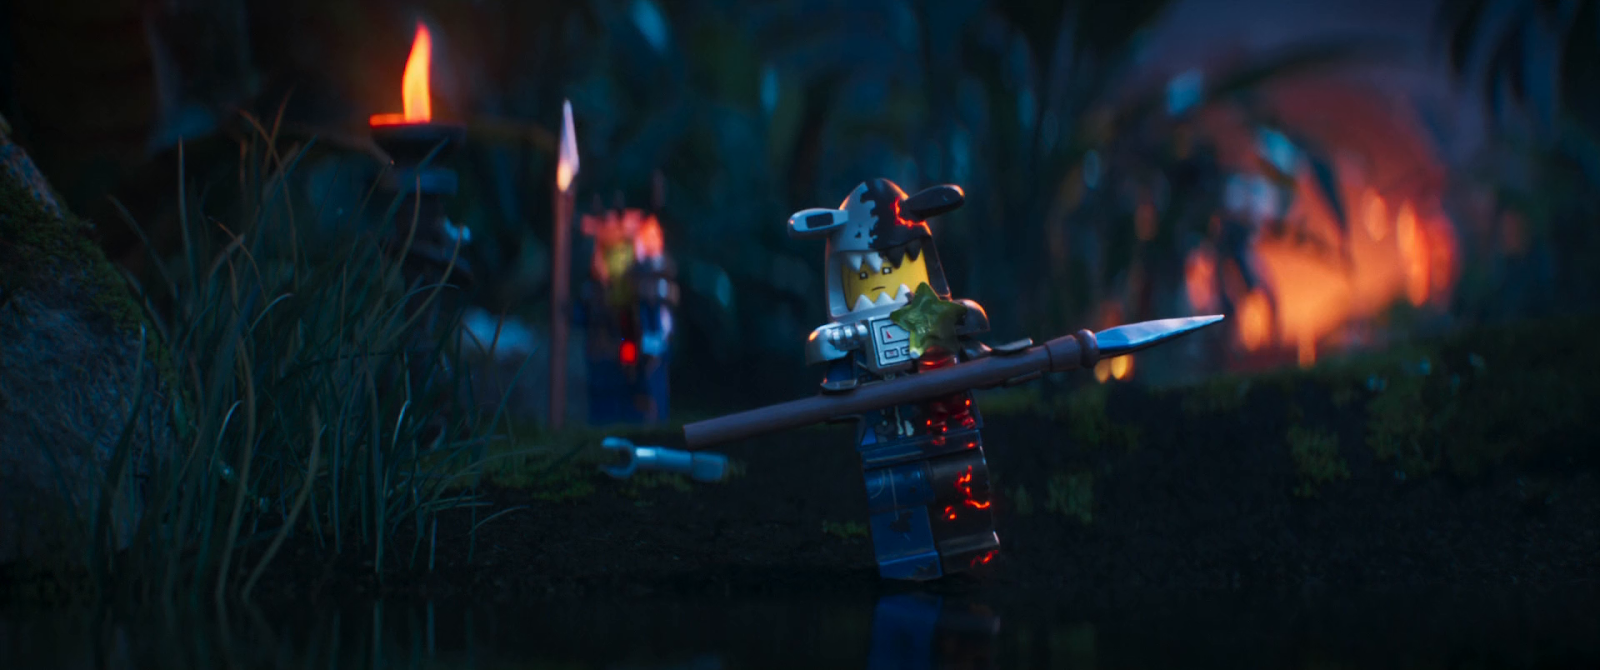 Lego Ninjago: La película (2017) BRRip 1080p Latino - Ingles captura 3